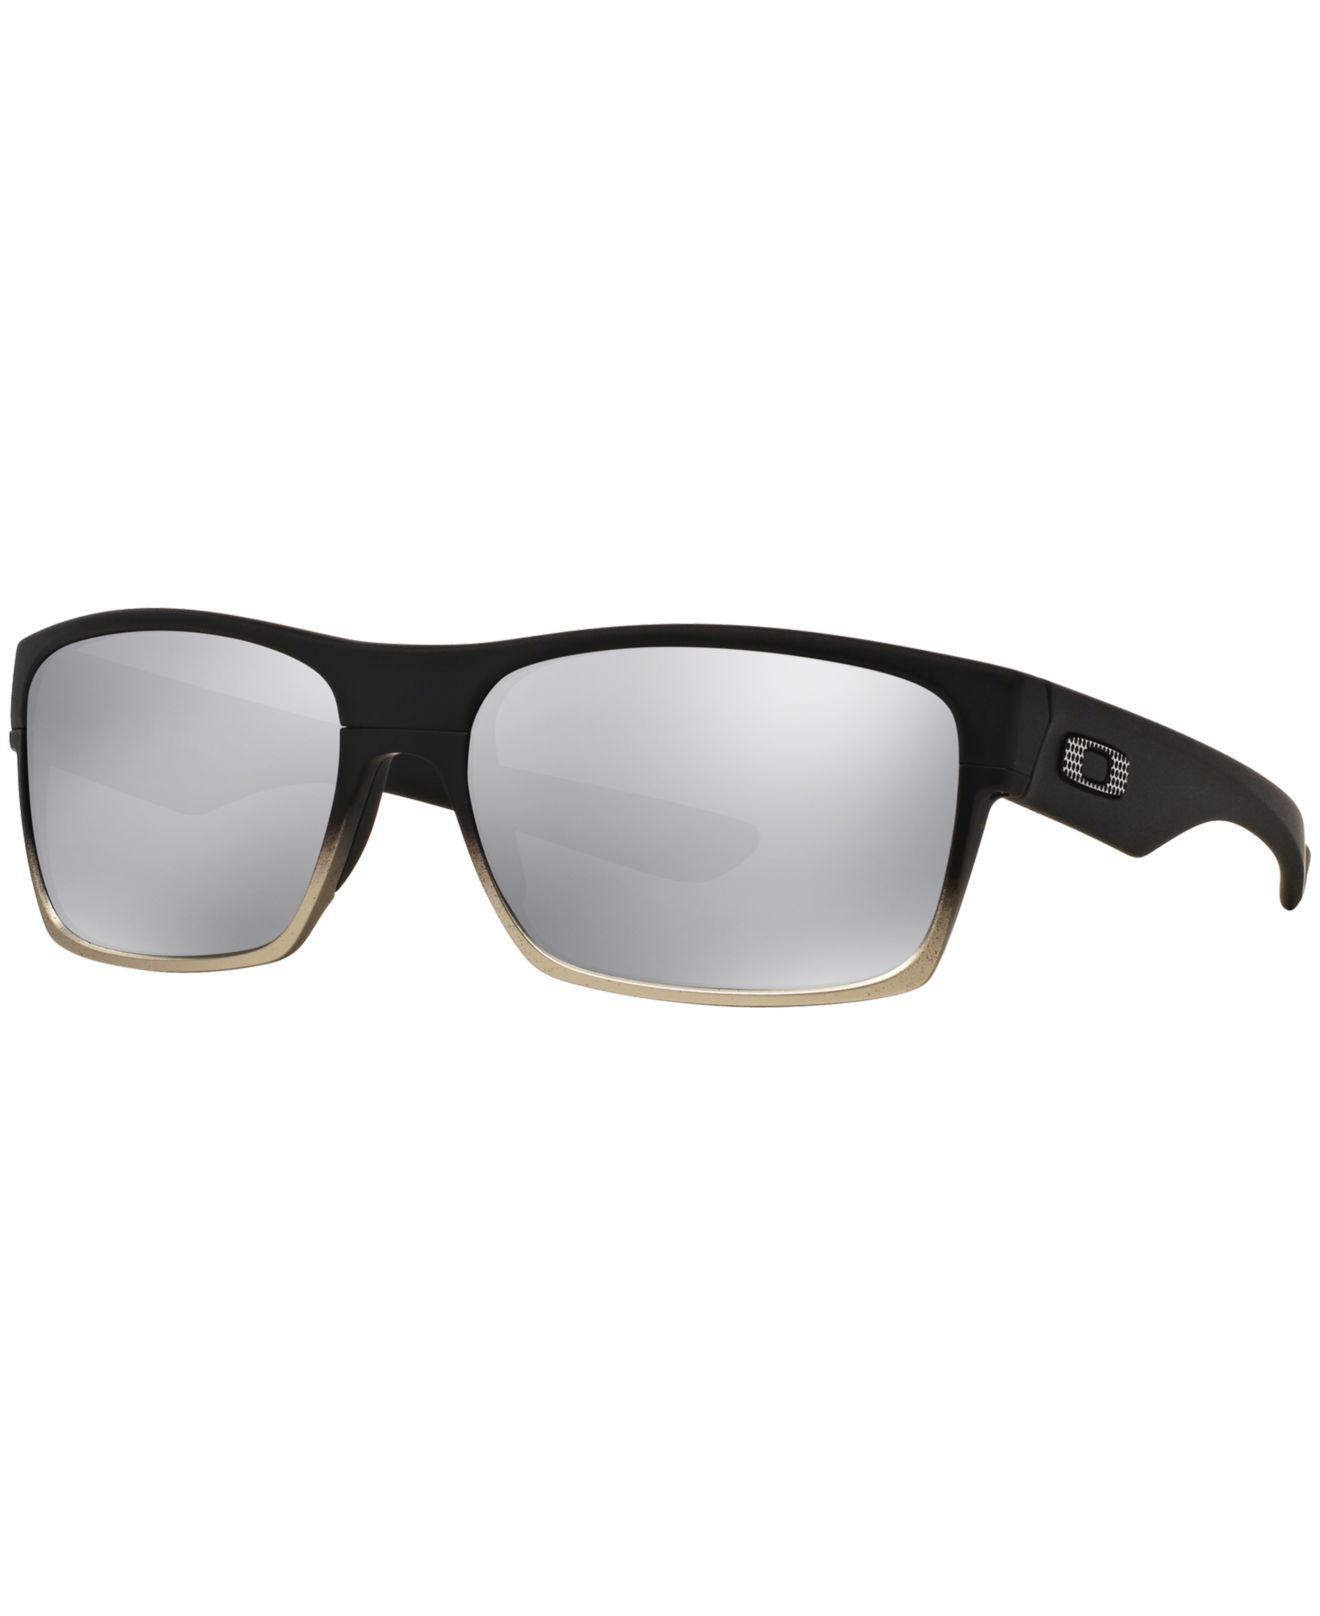 cbdb7e8d9a Lyst - Oakley Oo9189 Twoface in Black for Men